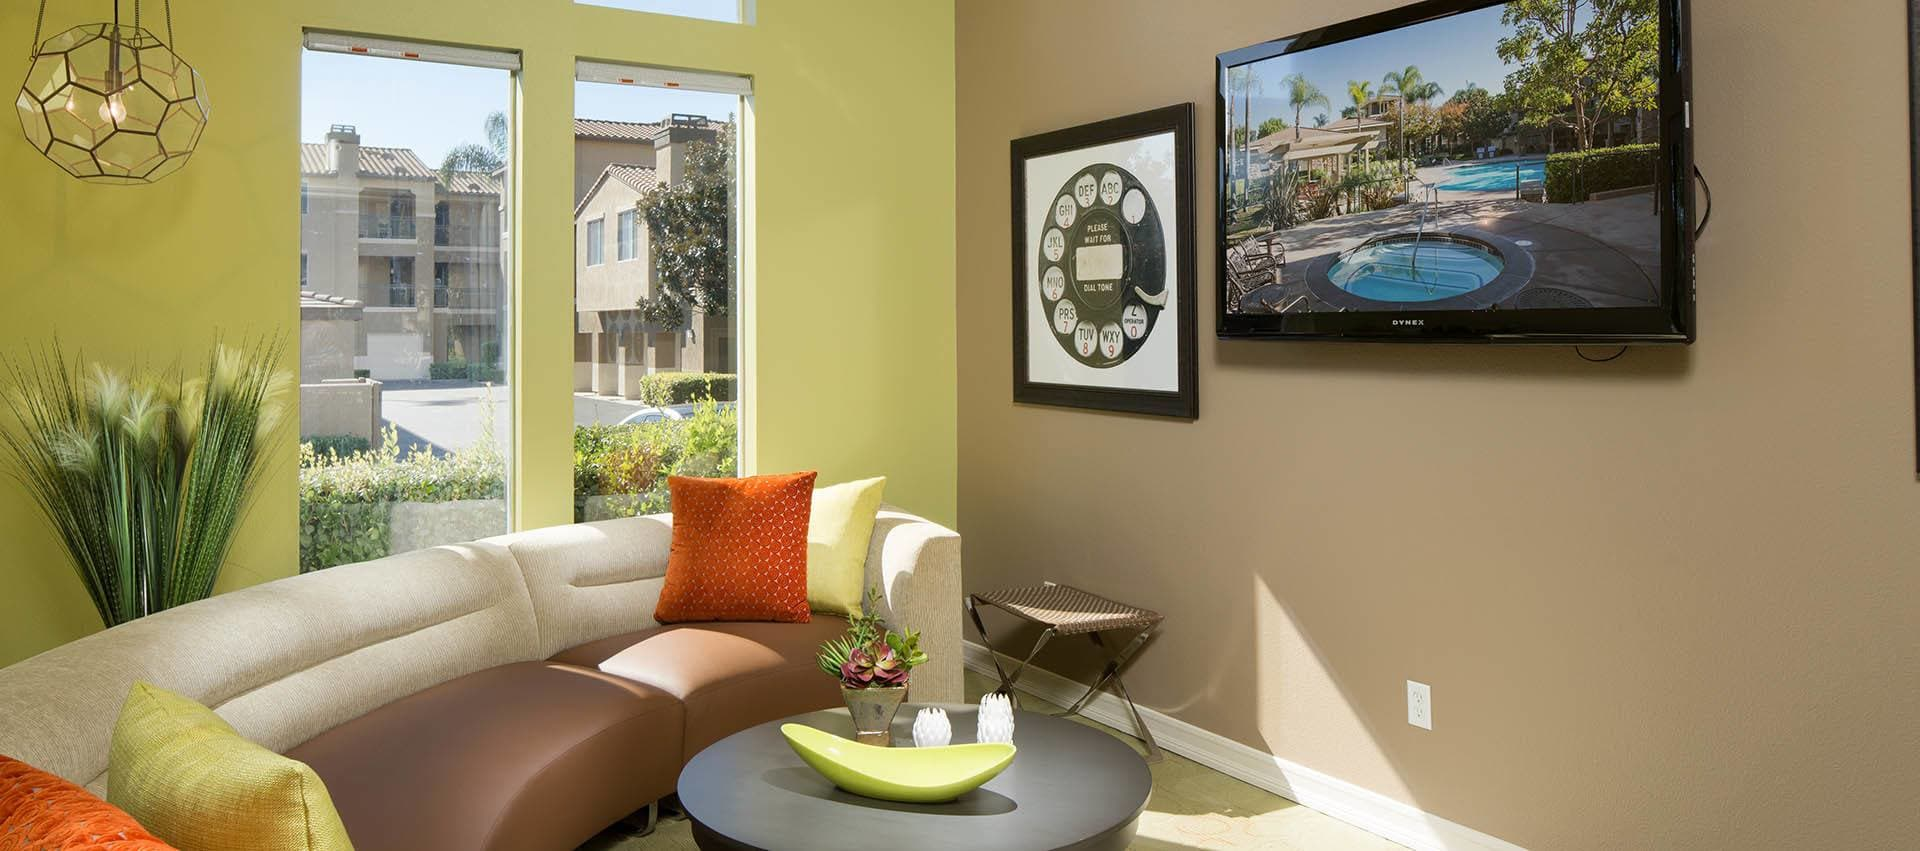 Flat Screen Tv On Wall in Alize at Aliso Viejo Apartment Homes in Aliso Viejo, California